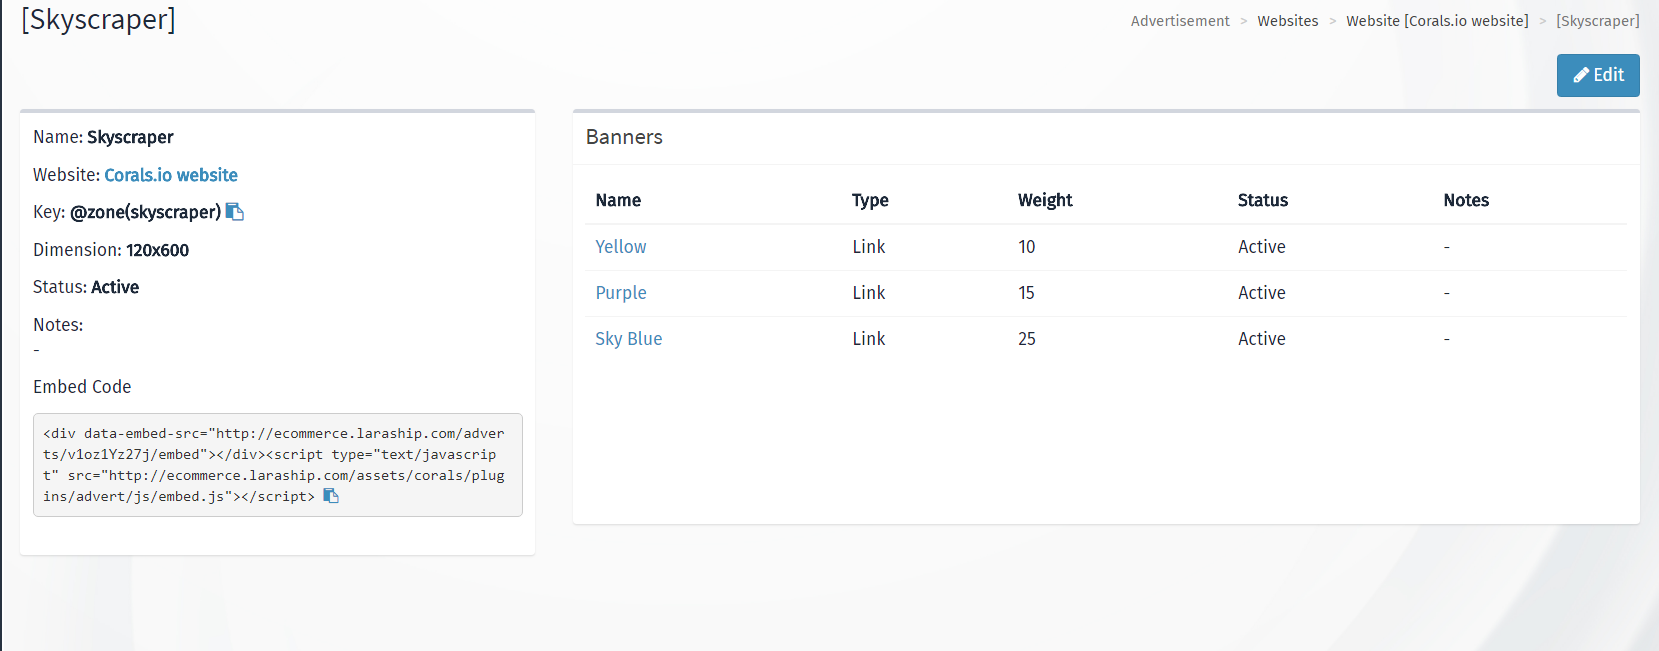 Zones Laravel Advertisement Management module for Laraship